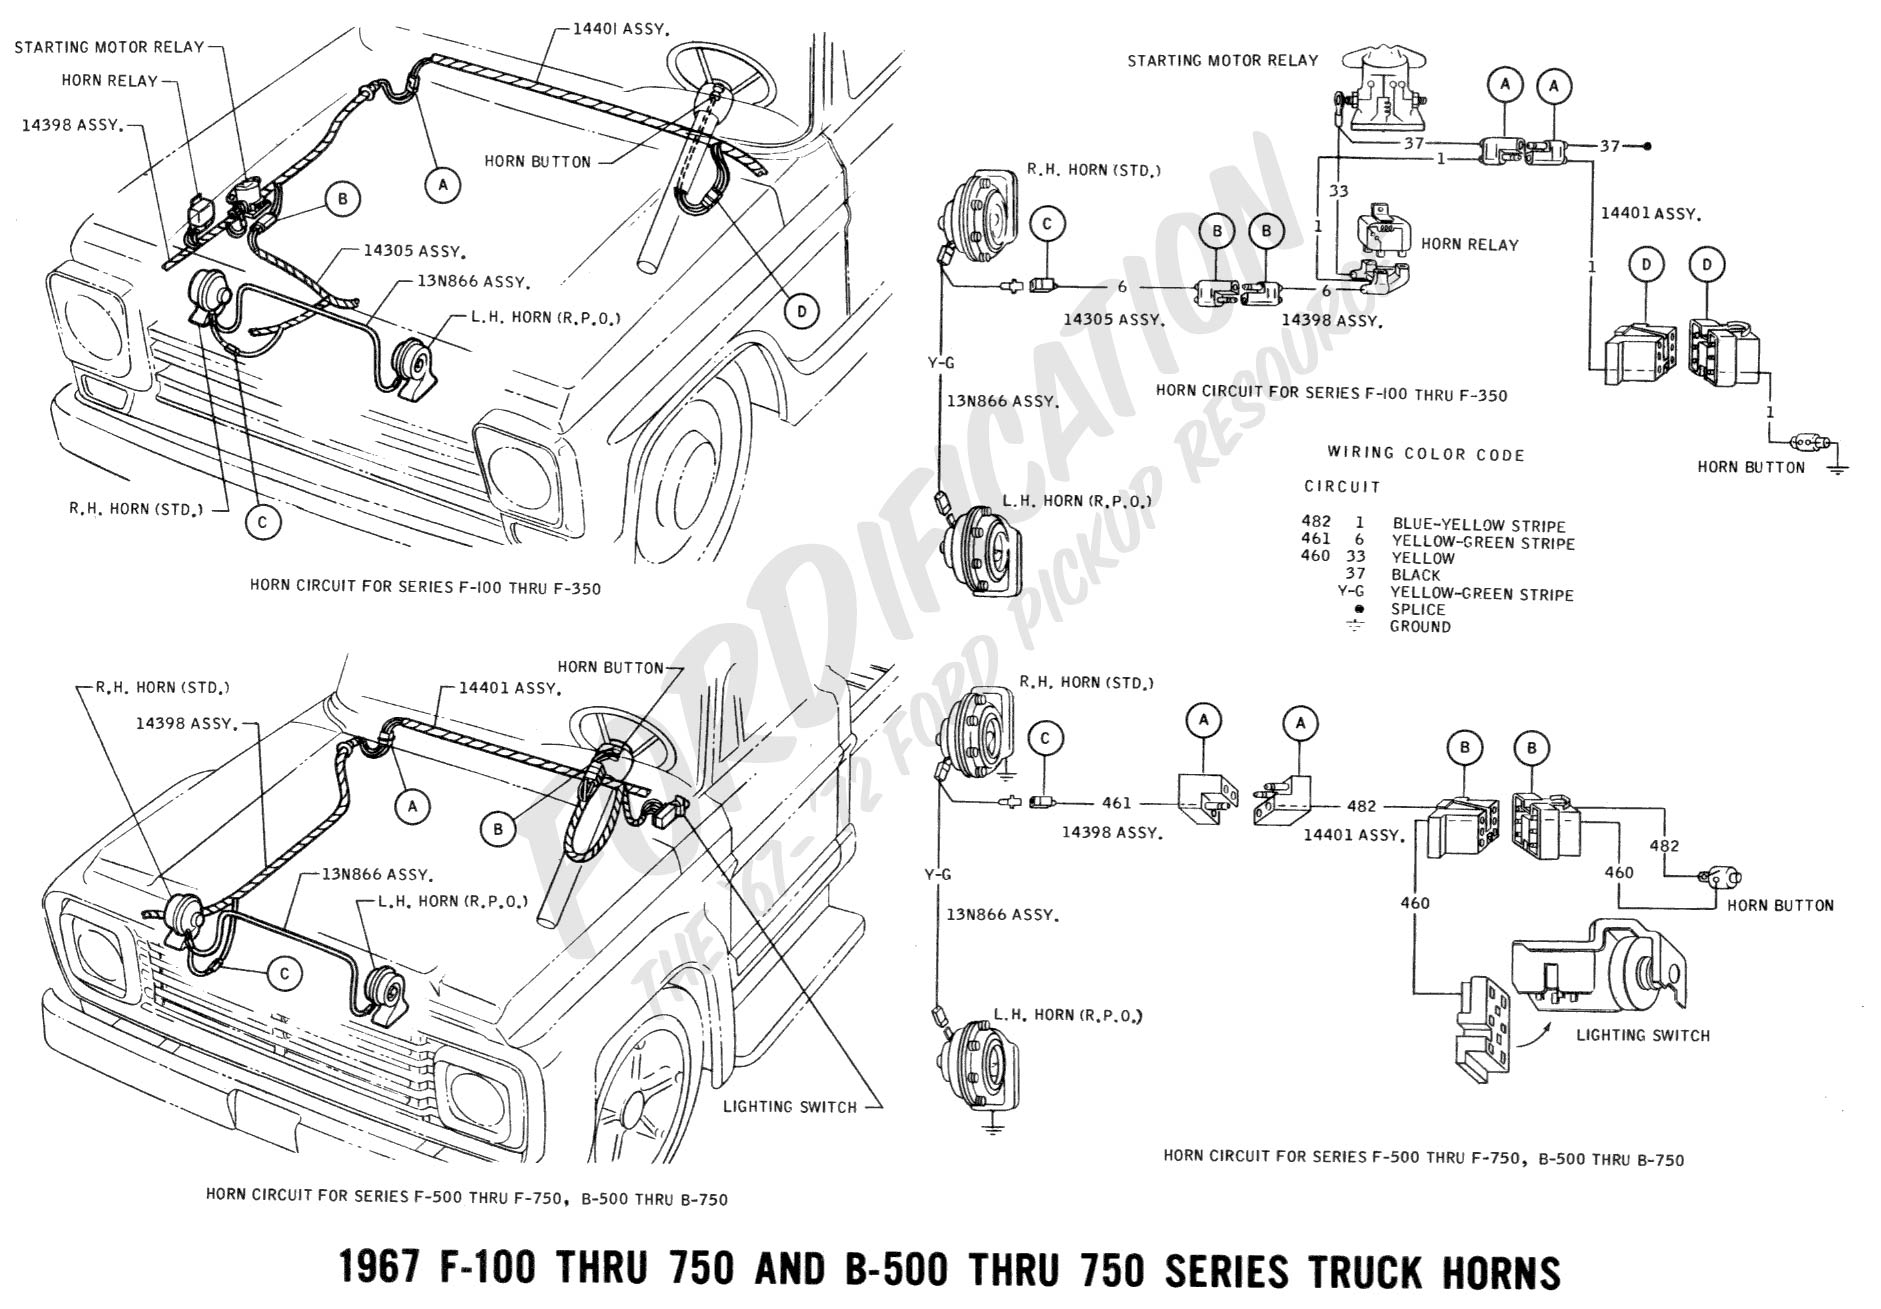 hight resolution of 1967 f 100 thru f 750 b 500 thru 750 horn